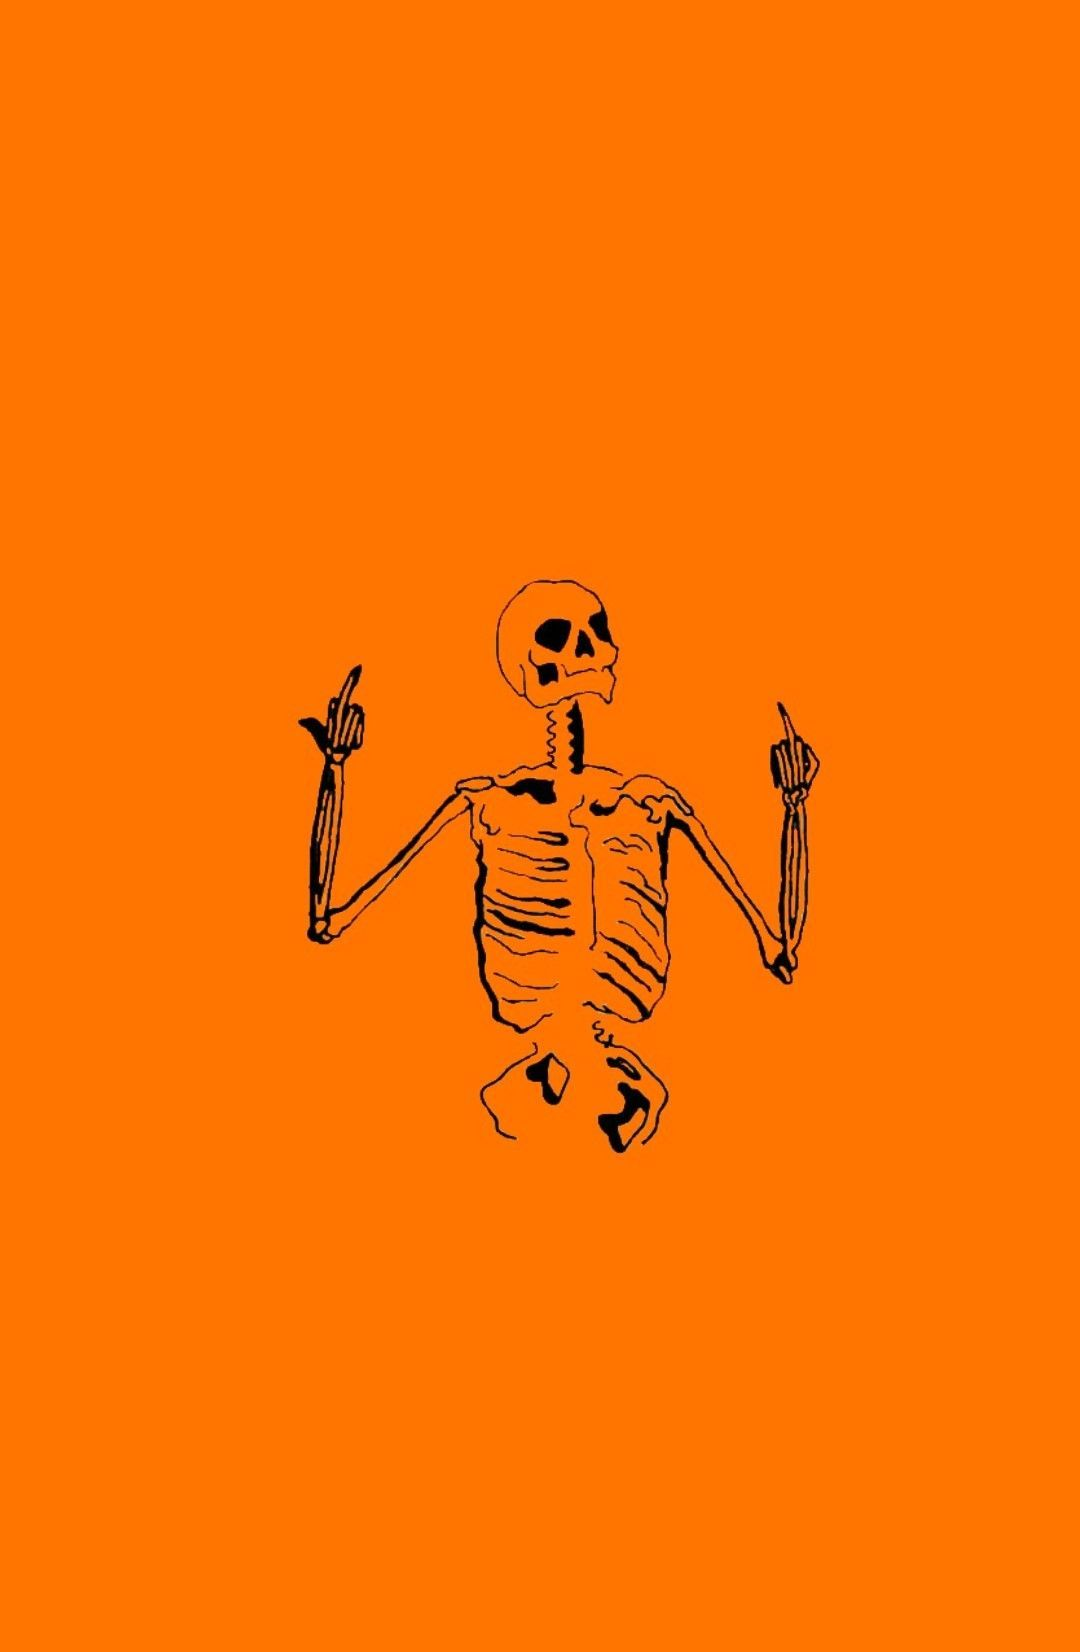 Halloween 2020 Lockscreen Halloween Skeleton Phone Background Themed Wallpaper In Pin By